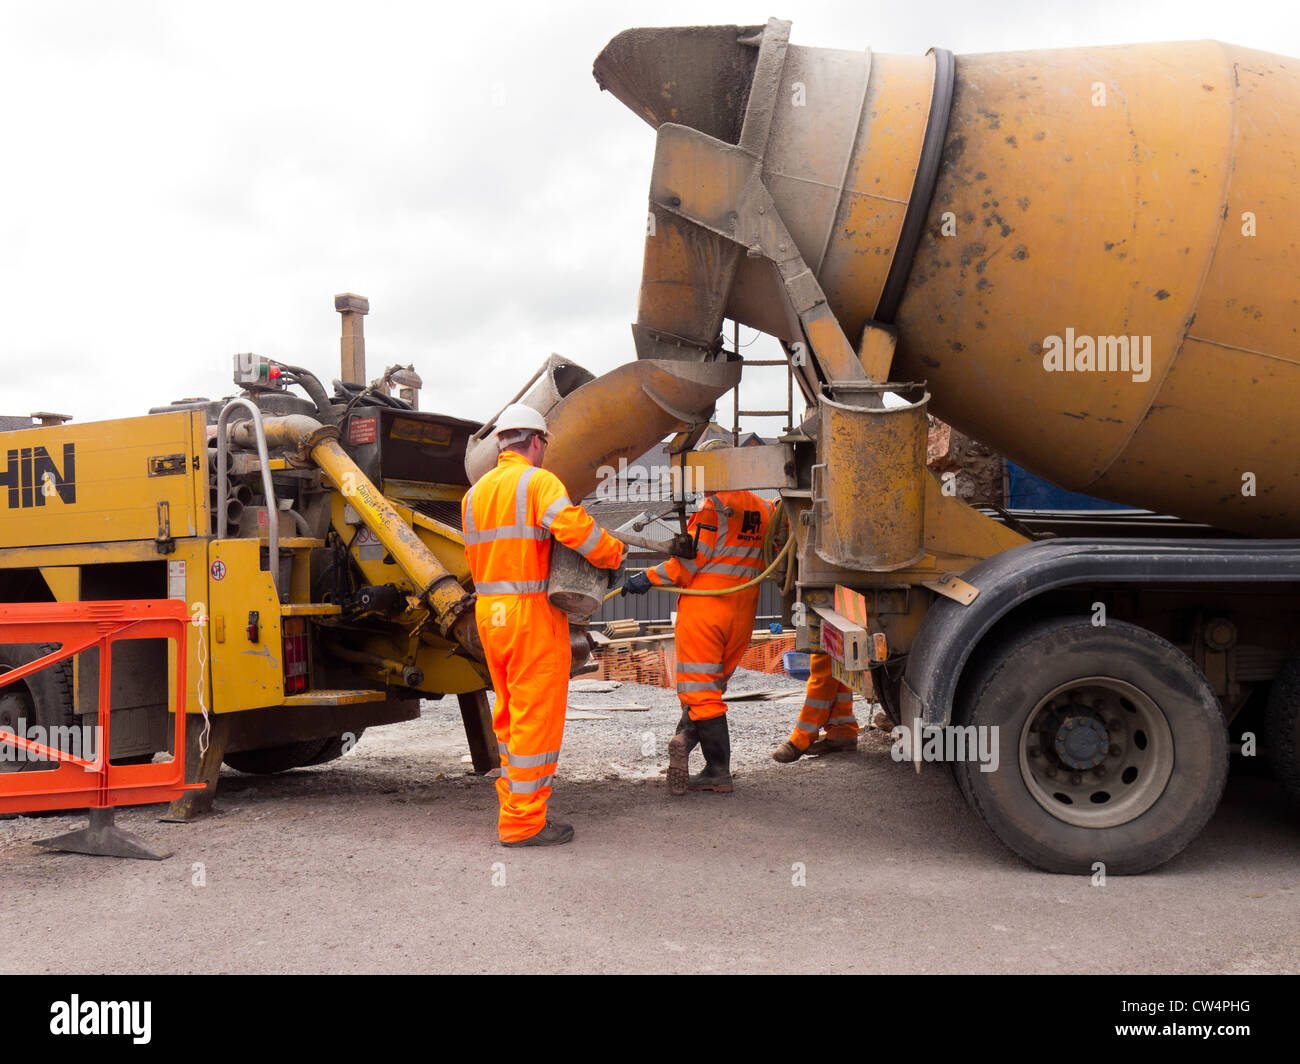 Construction workers and cement truck. - Stock Image